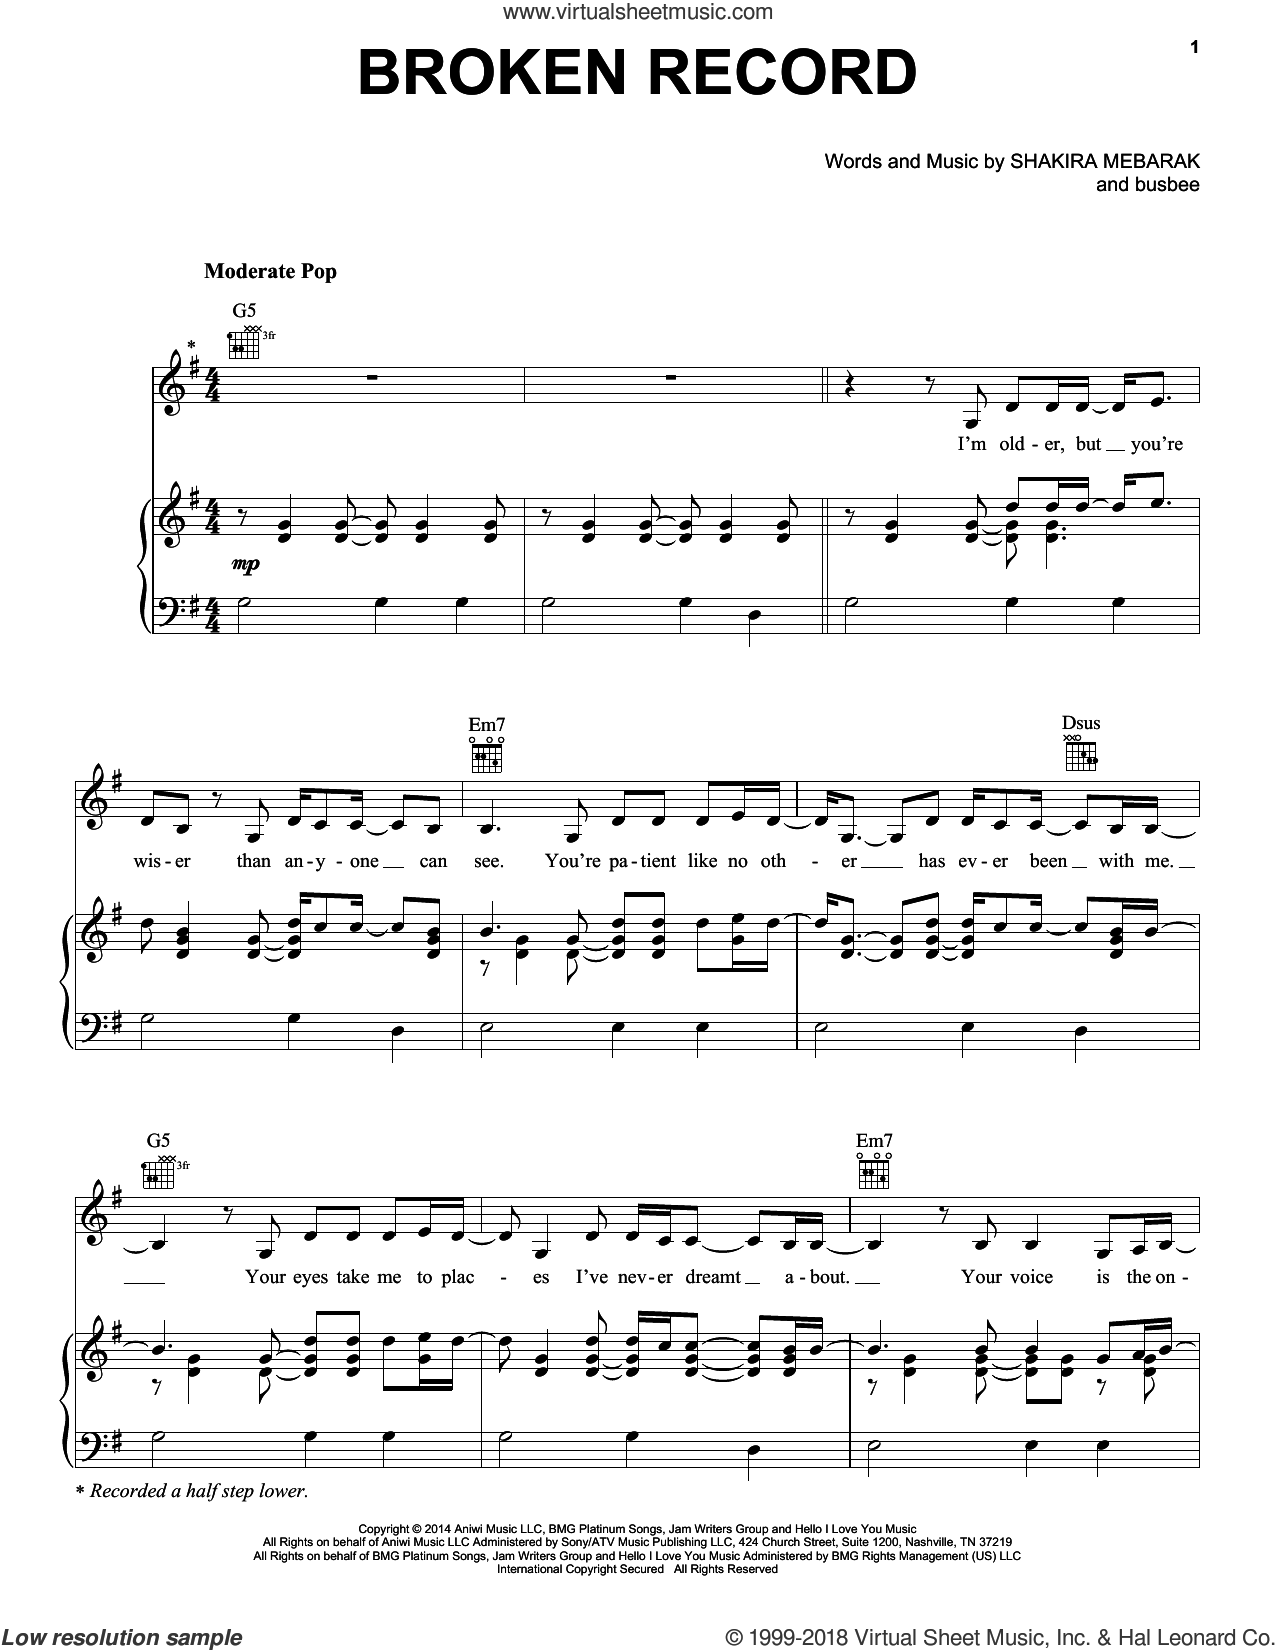 Broken Record sheet music for voice, piano or guitar by Shakira Mebarak, Shakira and busbee. Score Image Preview.